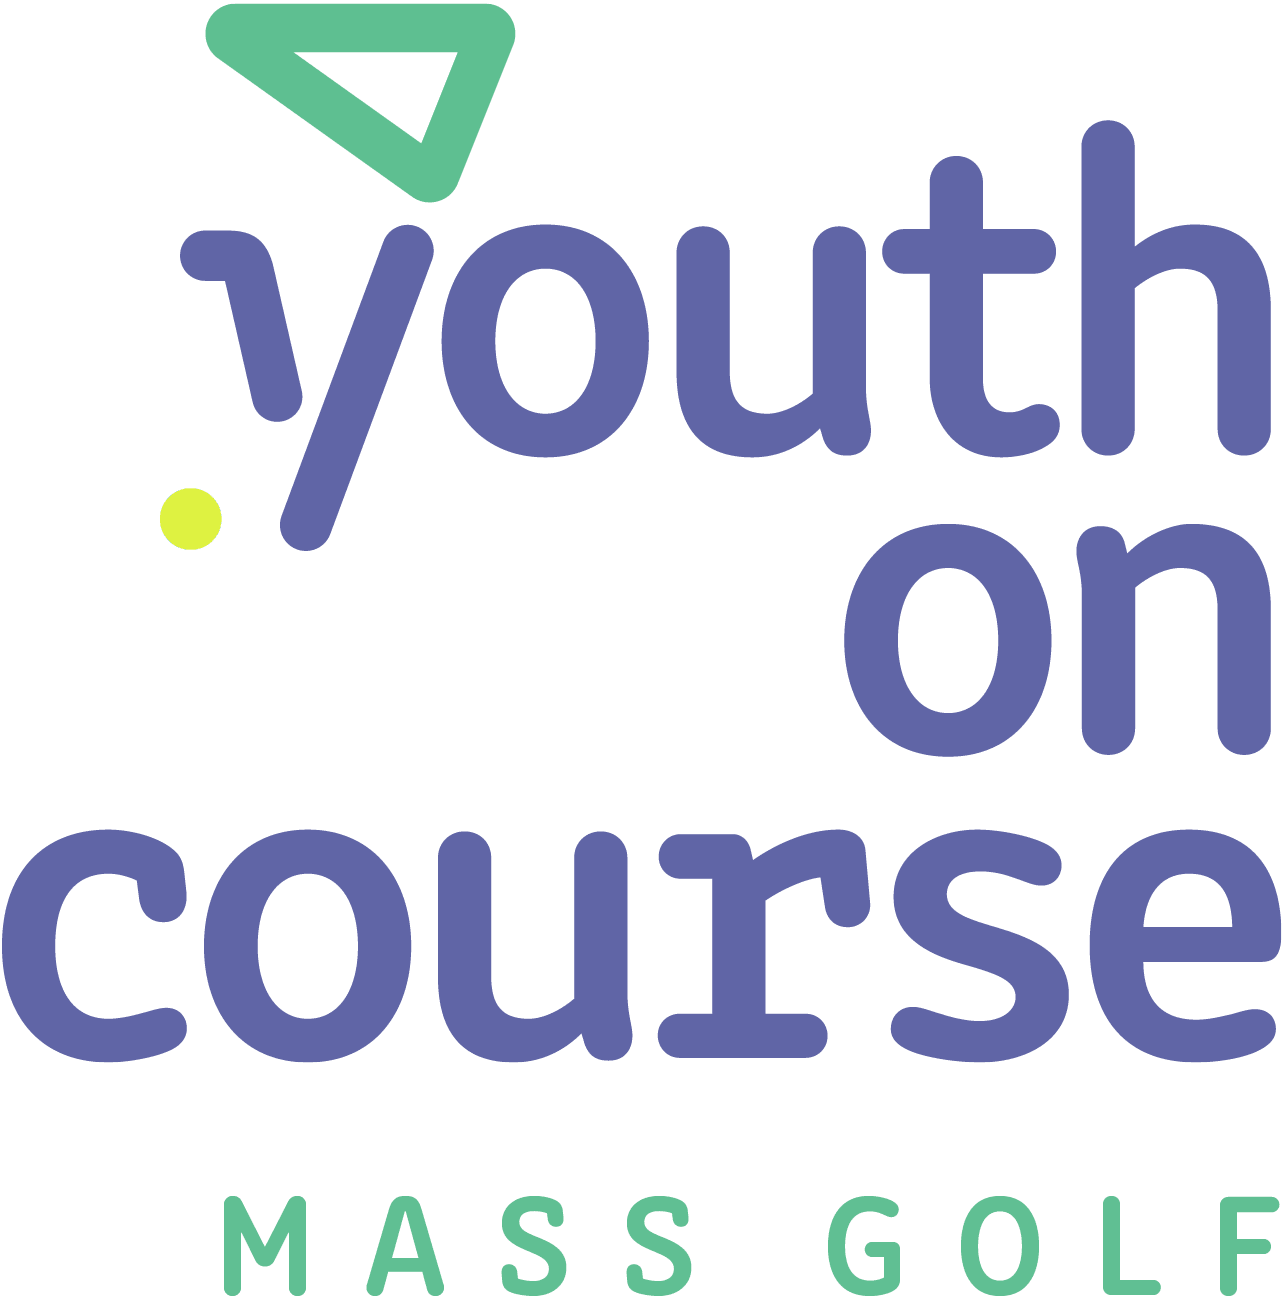 YOC_REGIONAL-FULL_COLOR-MASS_GOLF-STACKED